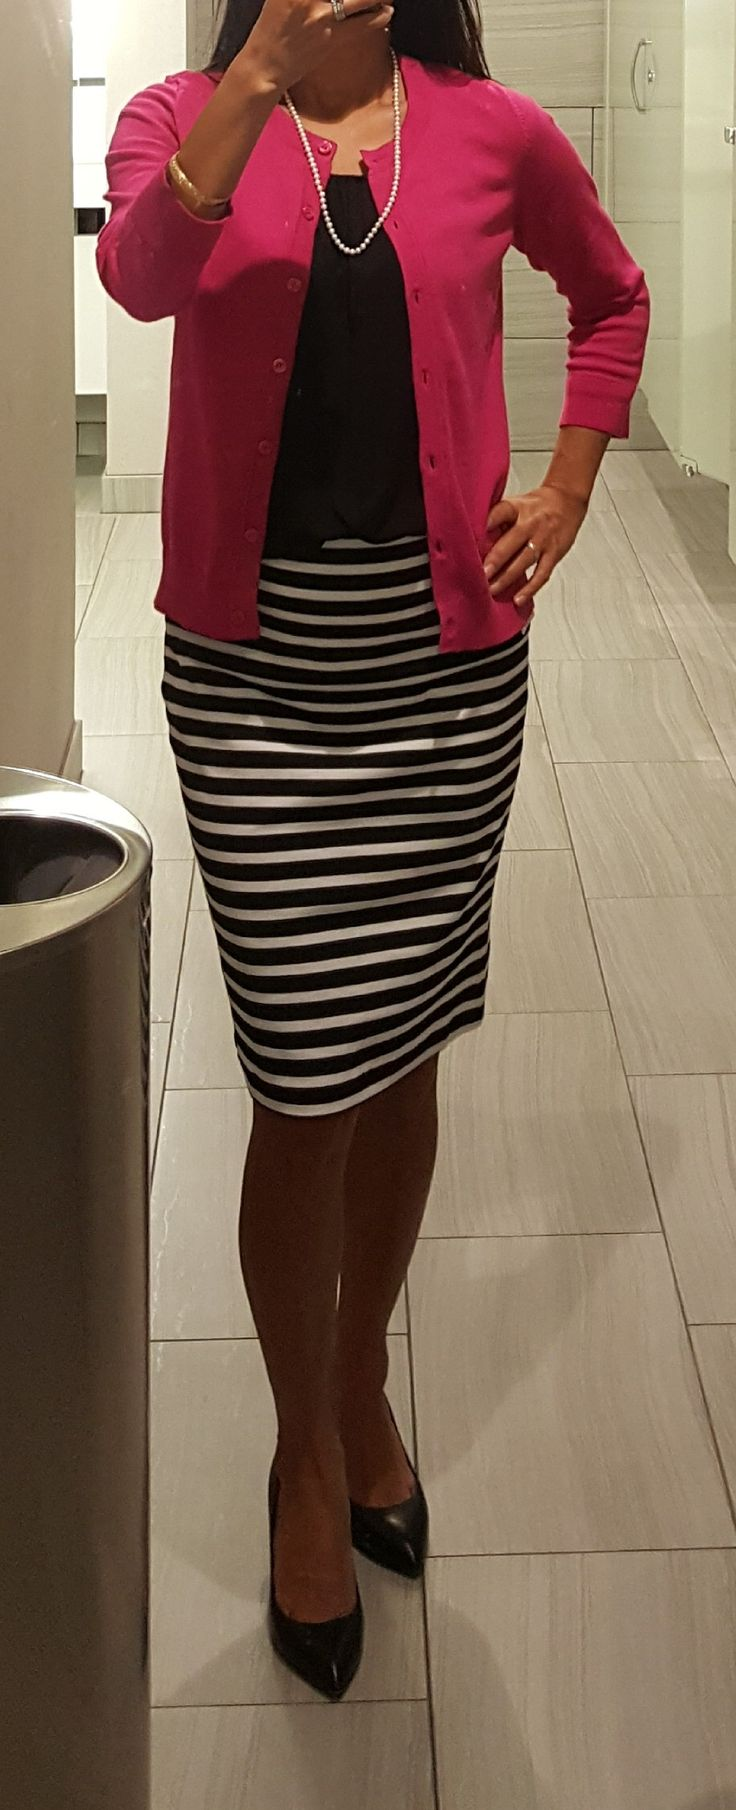 Cardi: Express, Top: Loft,  Skirt: Old Navy,  Heels: Vince Camuto